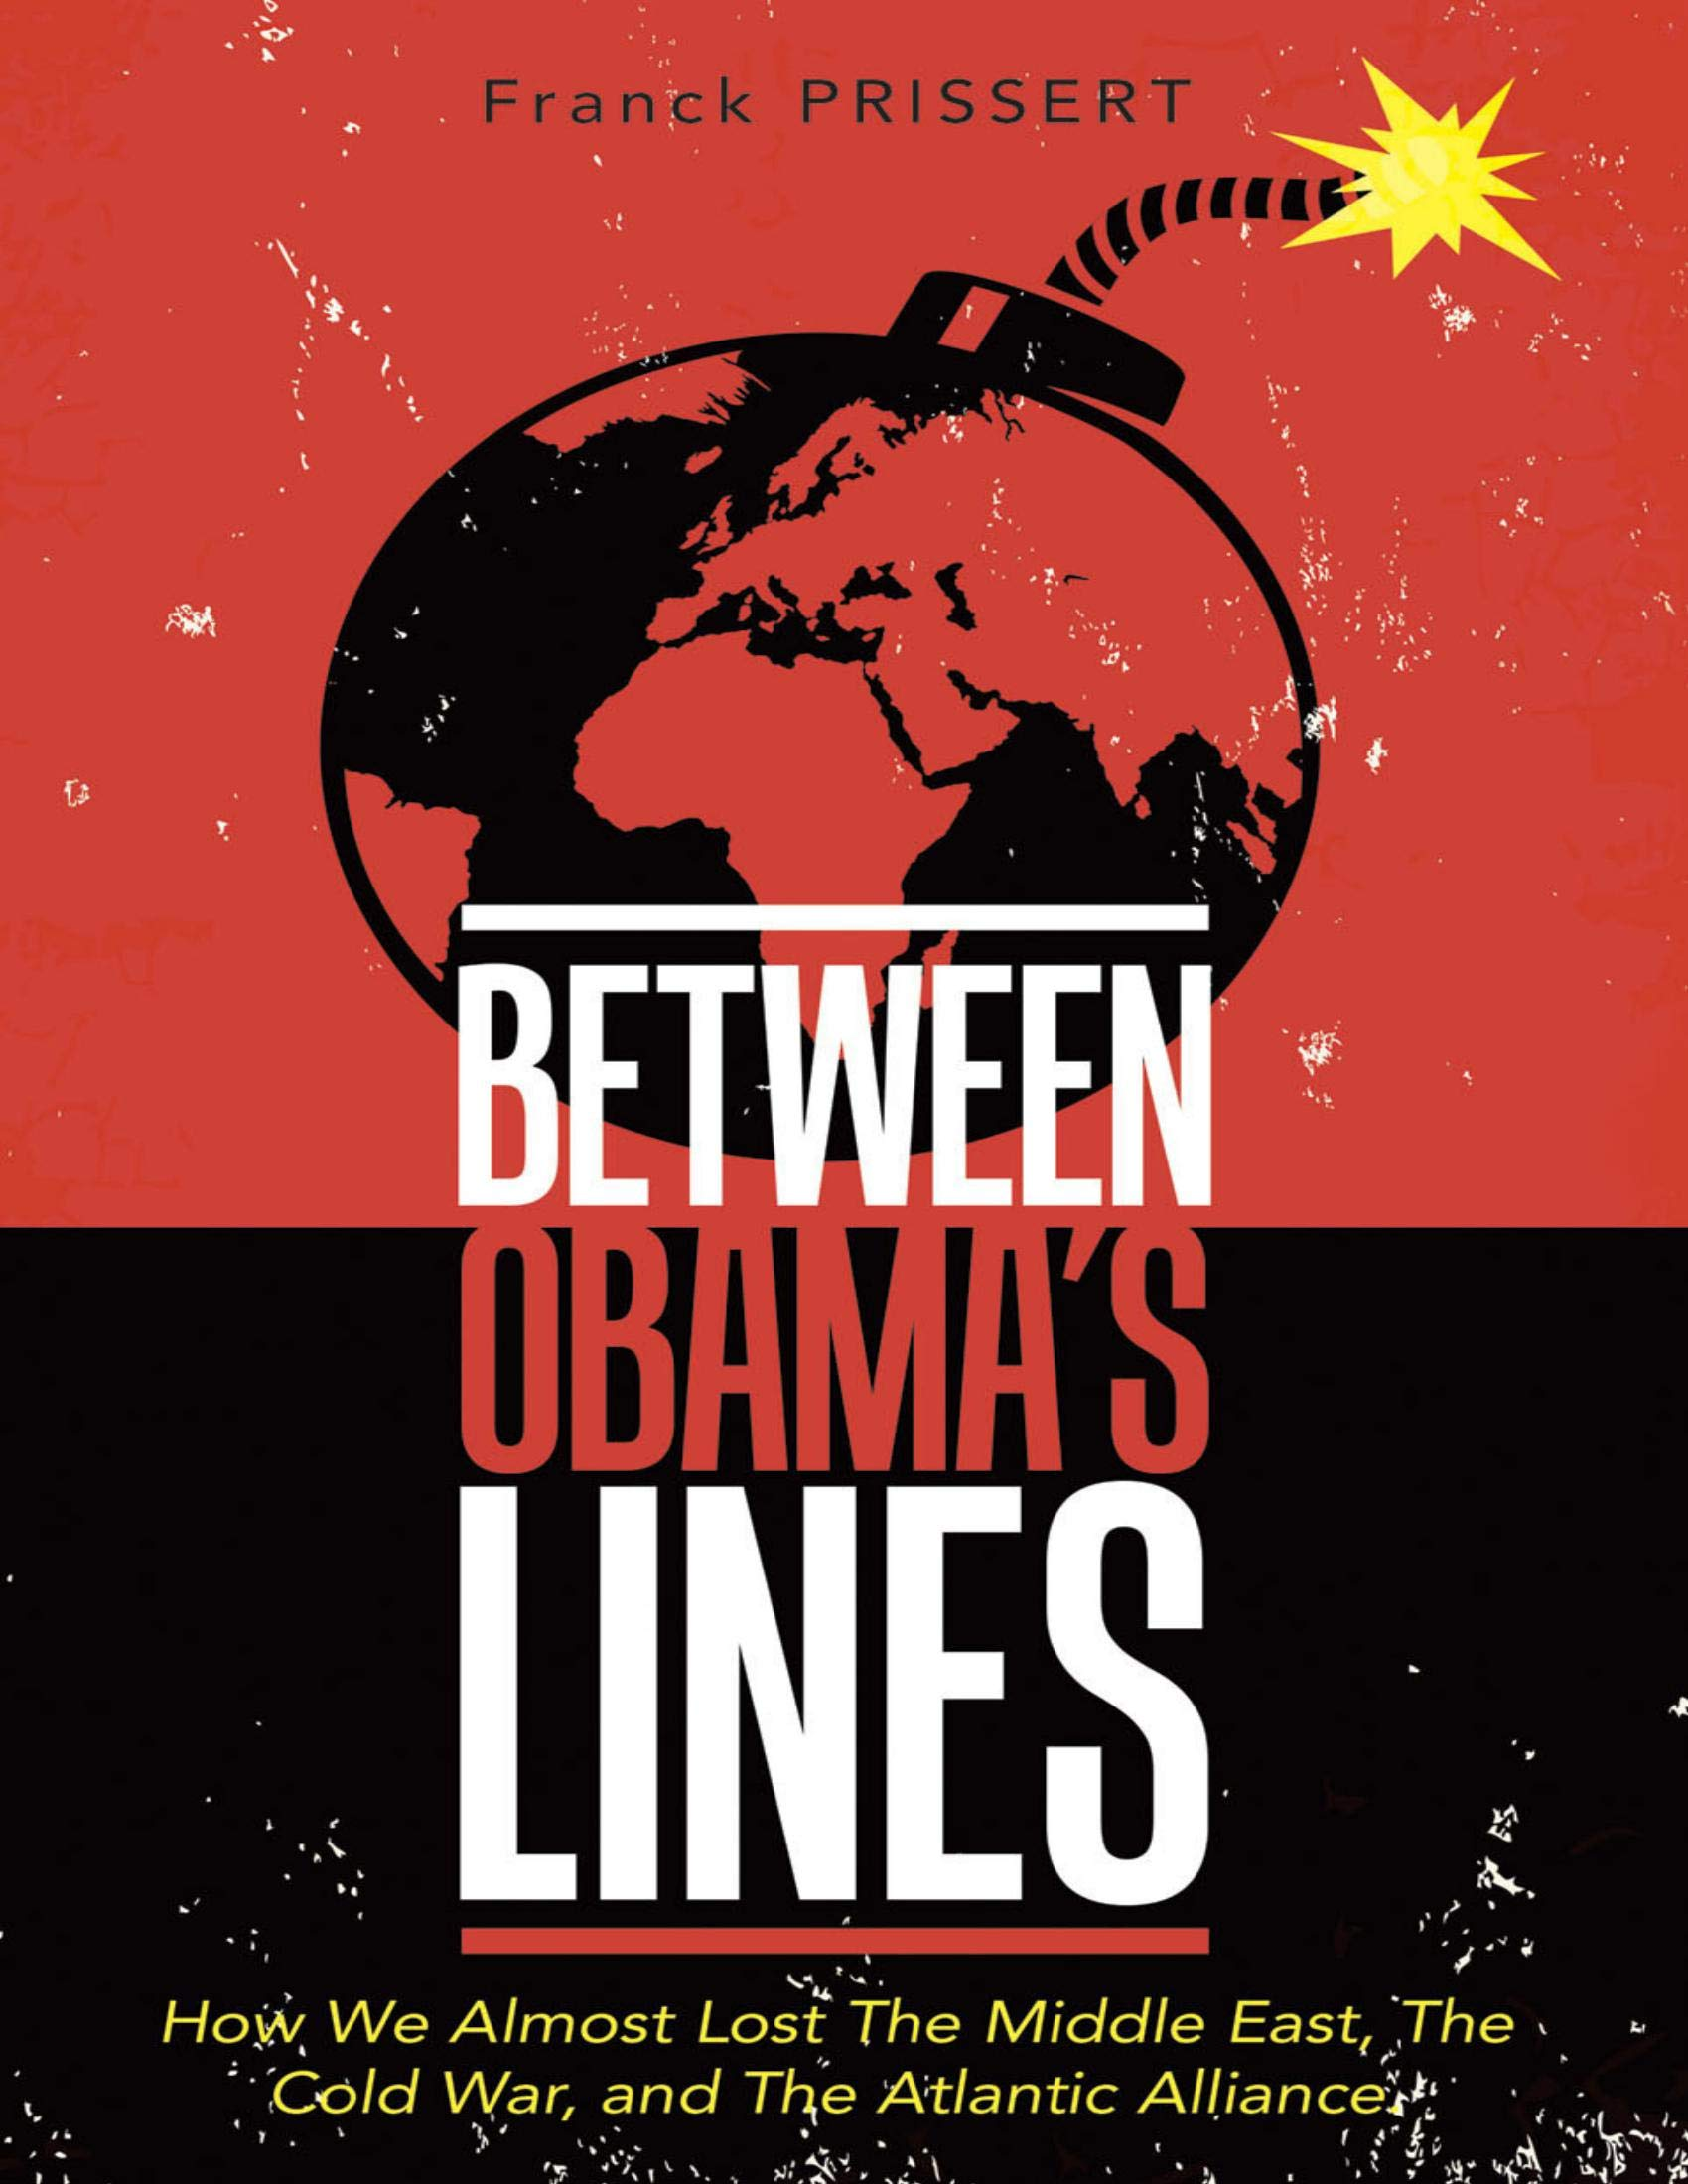 Between Obama's Lines: How We Almost Lost the Middle East, the Cold War, and the Atlantic Alliance